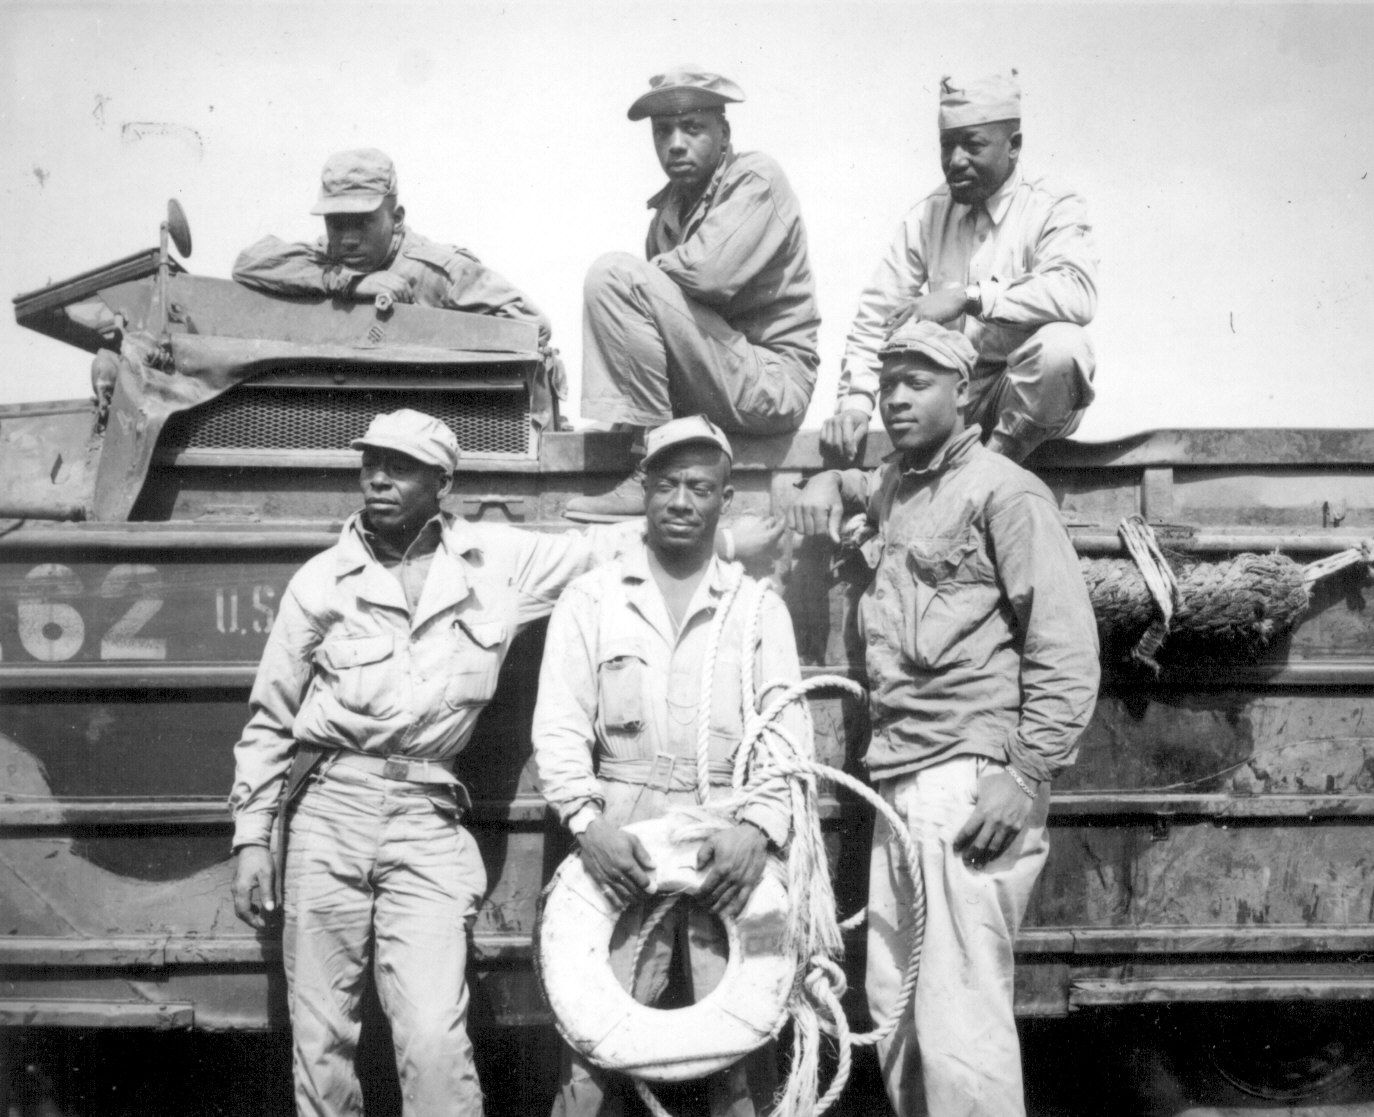 """Seeking to rescue a Marine who was drowning in the surf at Iwo Jima, this sextet of soldiers narrowly missed death themselves when their amphibian truck was swamped by heavy seas. From left to right, back row, they are T/5 L. C. Carter, Jr., Private John Bonner, Jr., Staff Sergeant Charles R. Johnson. Standing, from left to right, are T/5 A. B. Randle, T/5 Homer H. Gaines, and Private Willie Tellie."" March 11, 1945. (S/Sgt. W. H. Feen)"